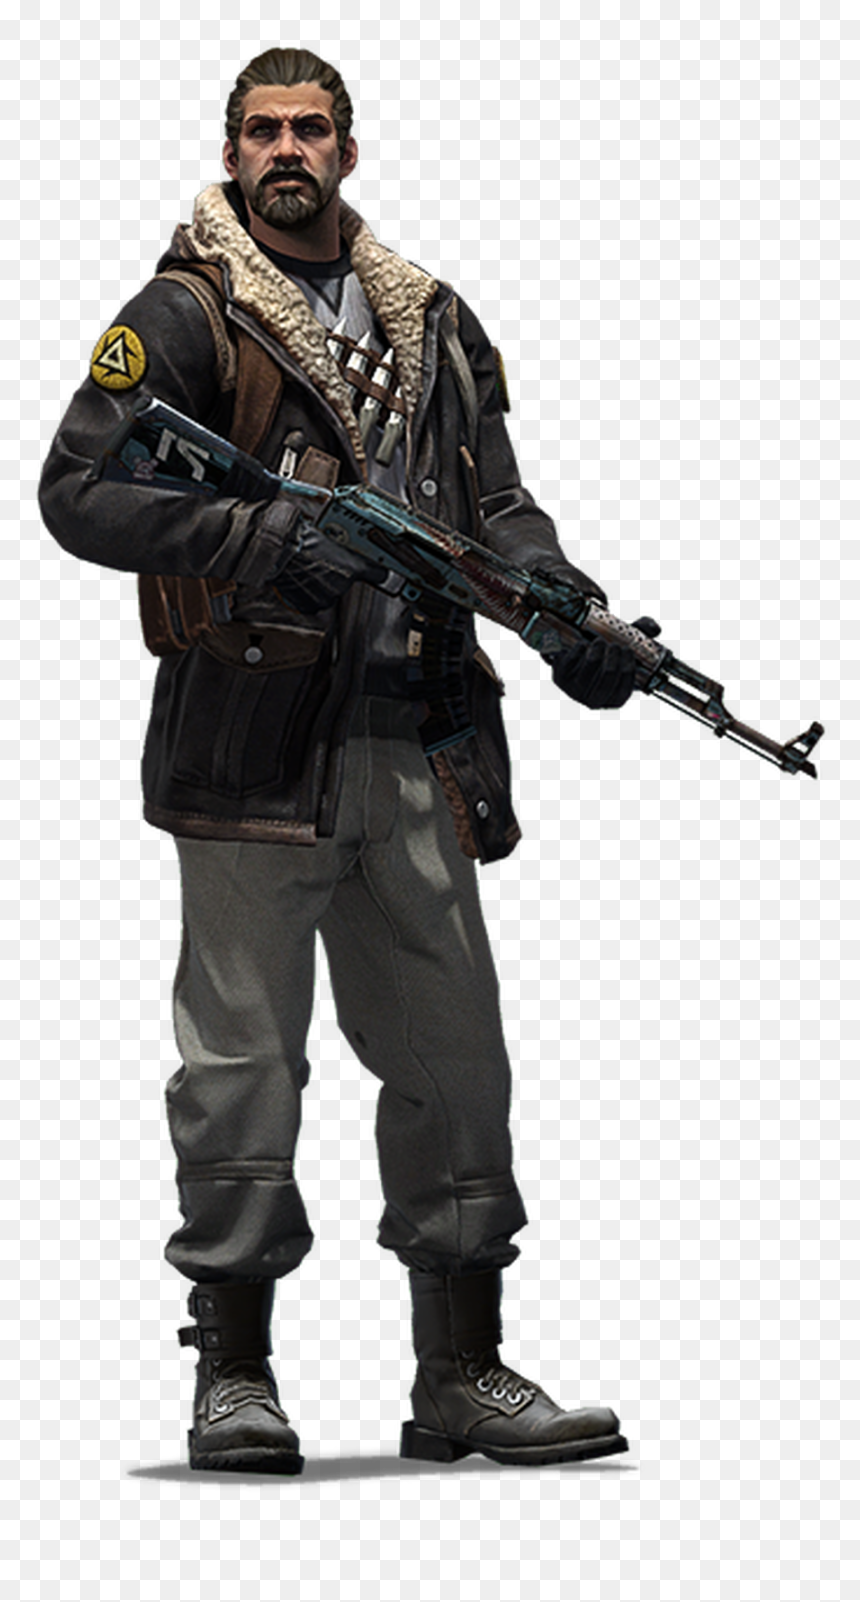 Blackwolf Sabre Csgo Agents Hd Png Download Is Pure And Creative Png Image Uploaded By Designer To Search More Free Png Image Png Free Png Pure Products